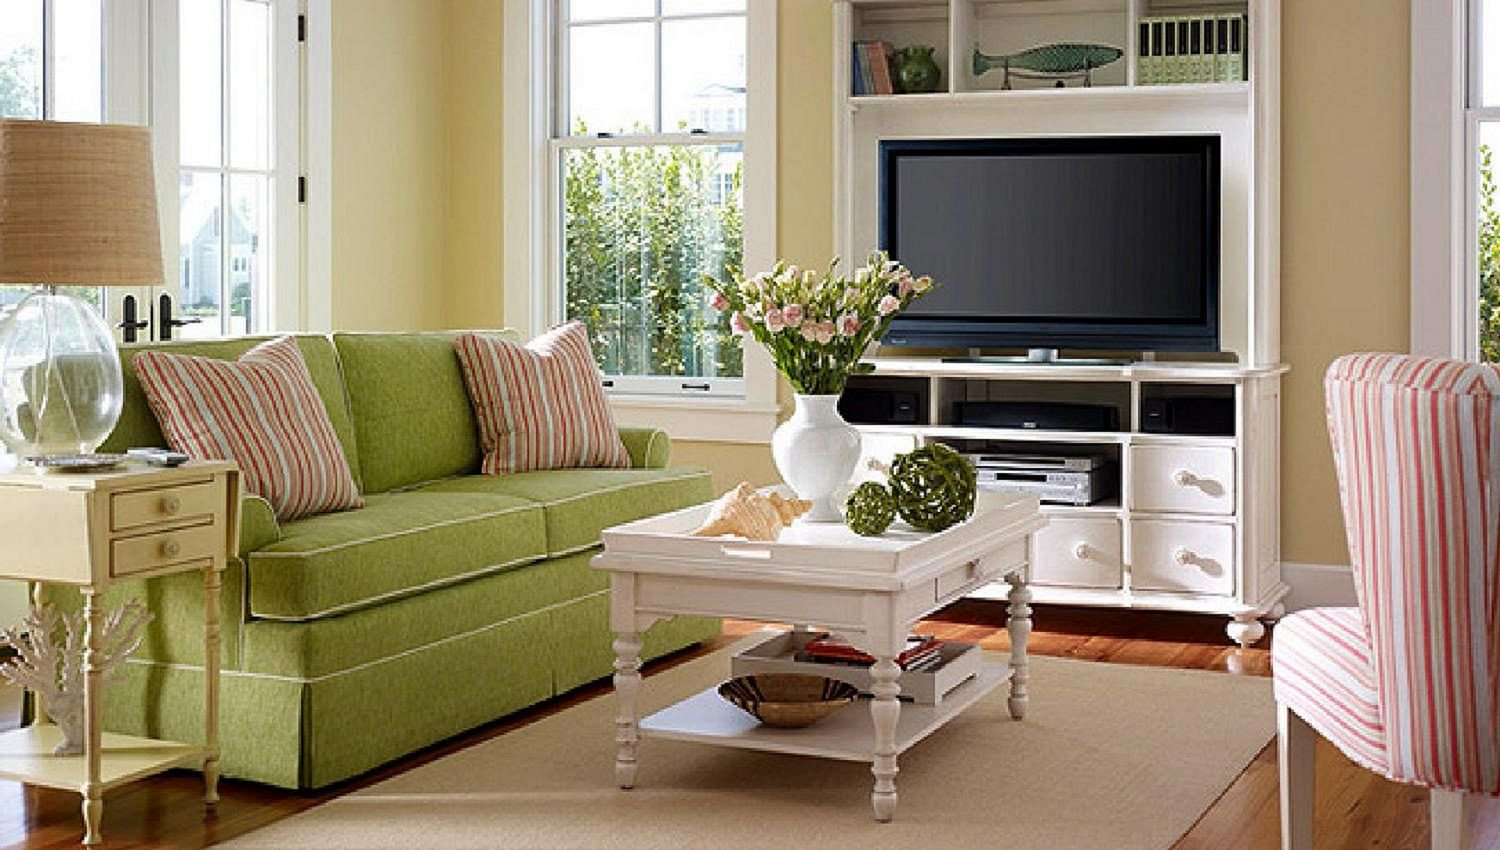 Cute Small Living Room Ideas New Cute Small Living Room Ideas Cute Small Living Room Ideas Design Ideas and Photos